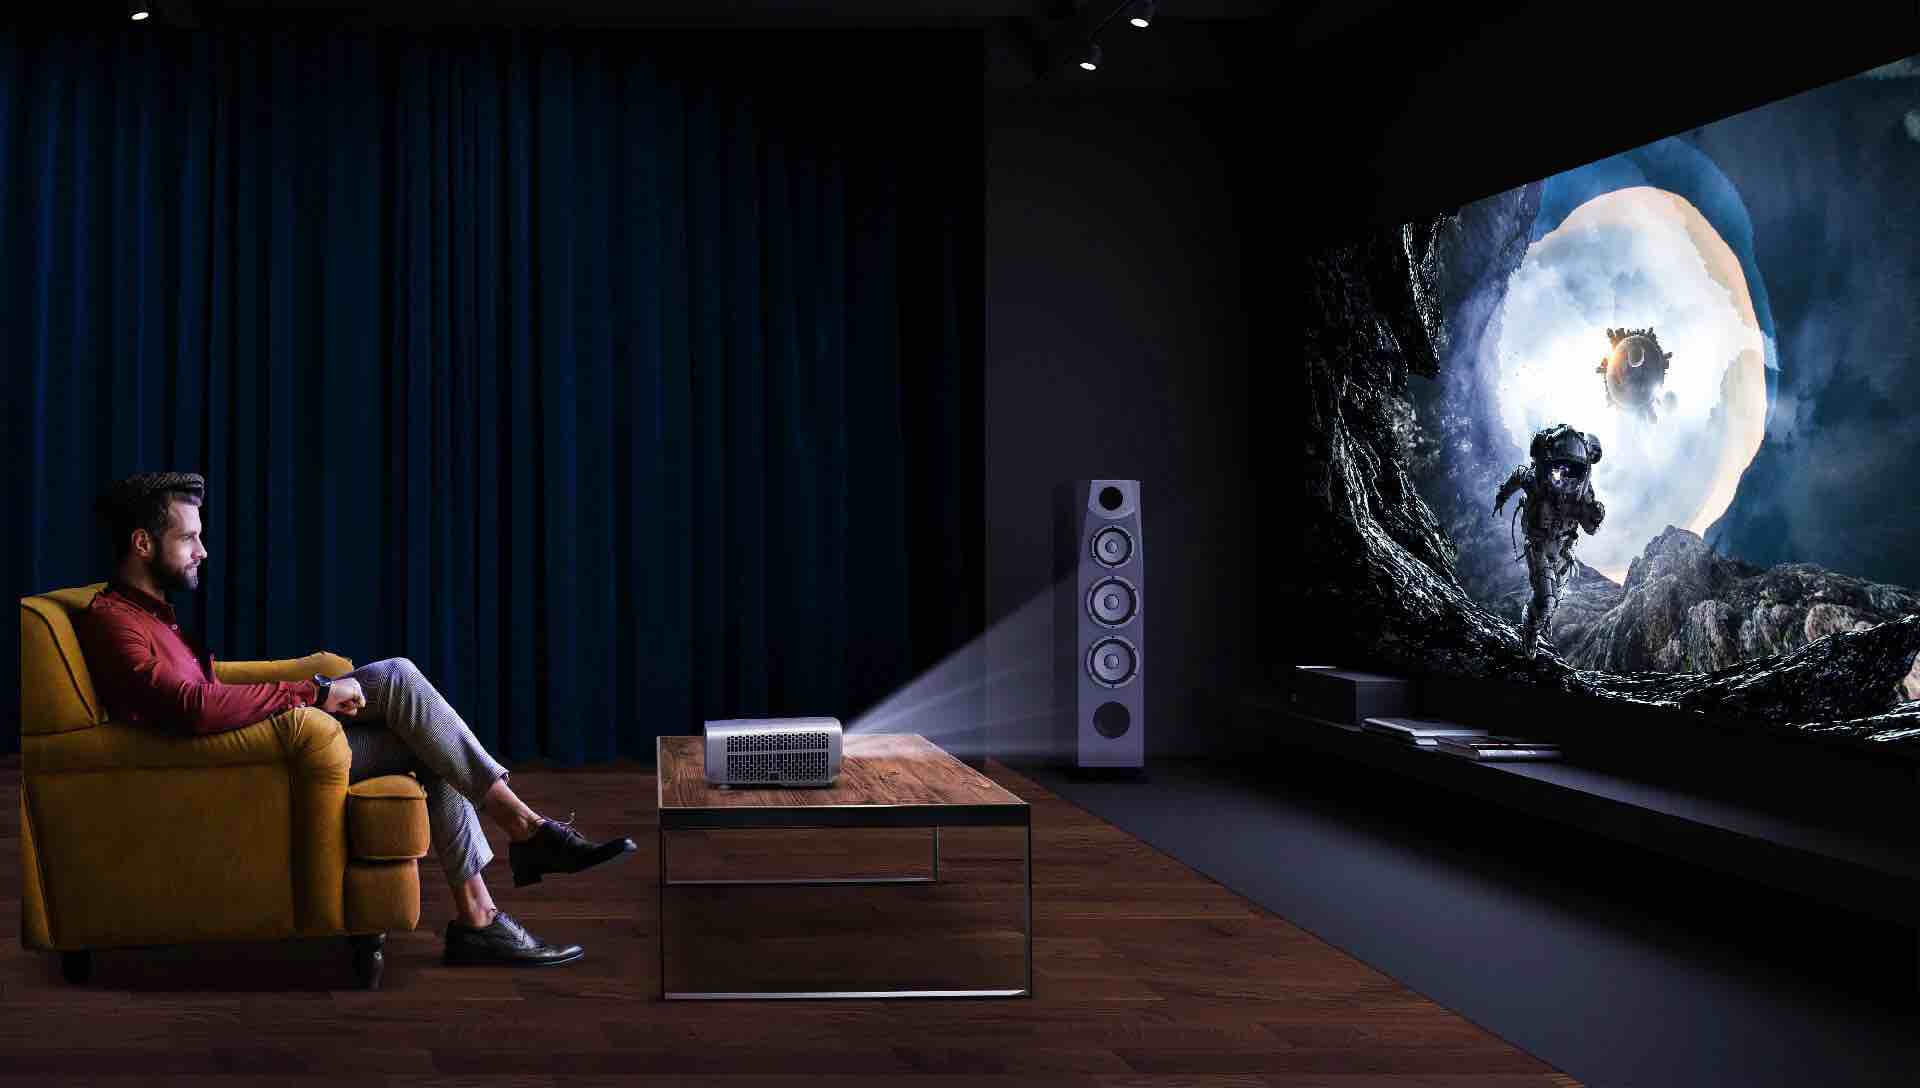 4K home theatre projector